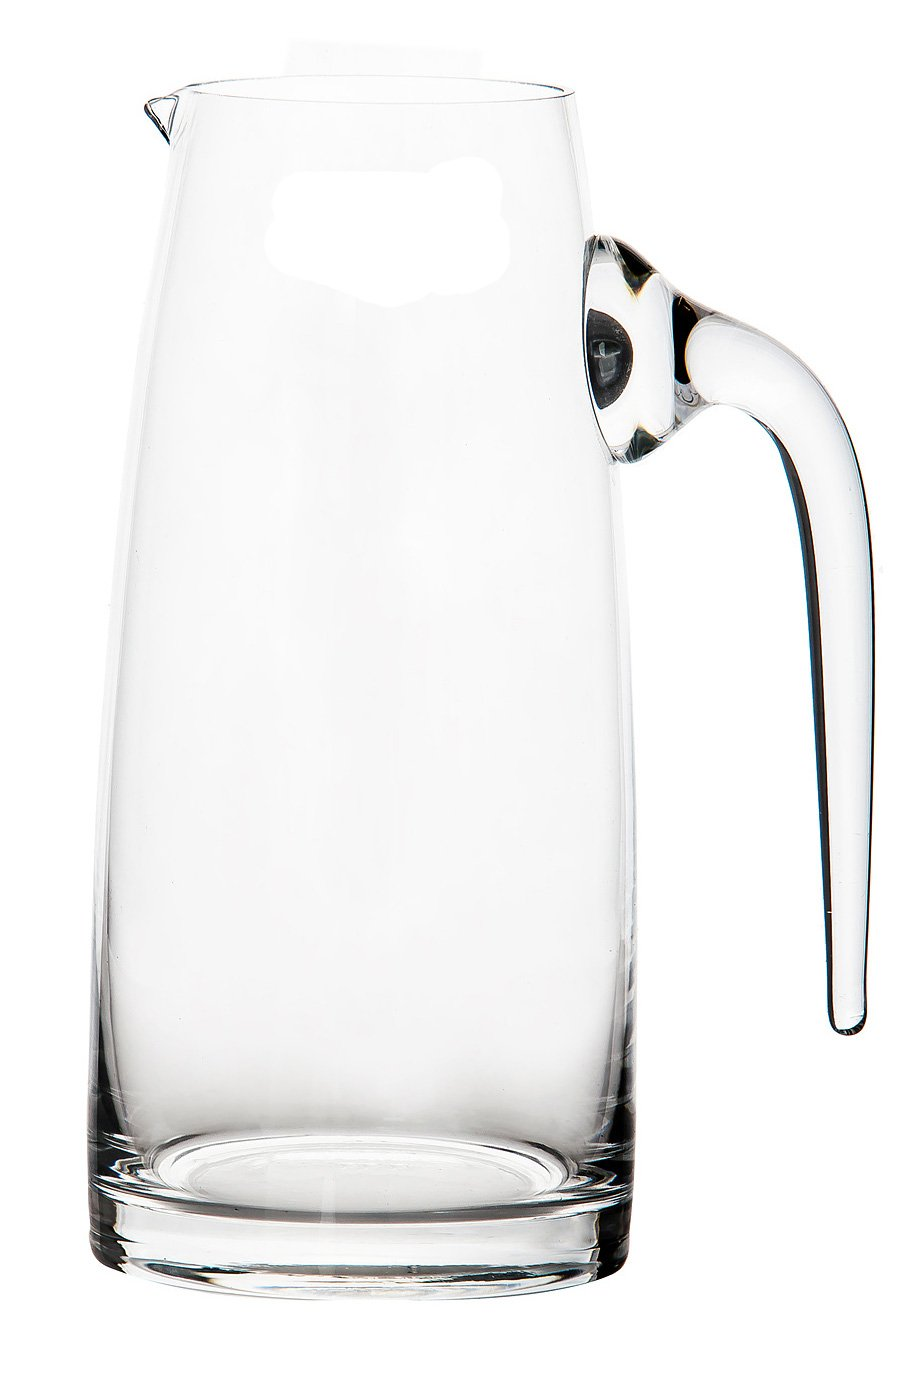 Spiceberry Home Handcrafted Pitcher/Carafe/Decanter, 40-ounce (1.2 Liter)